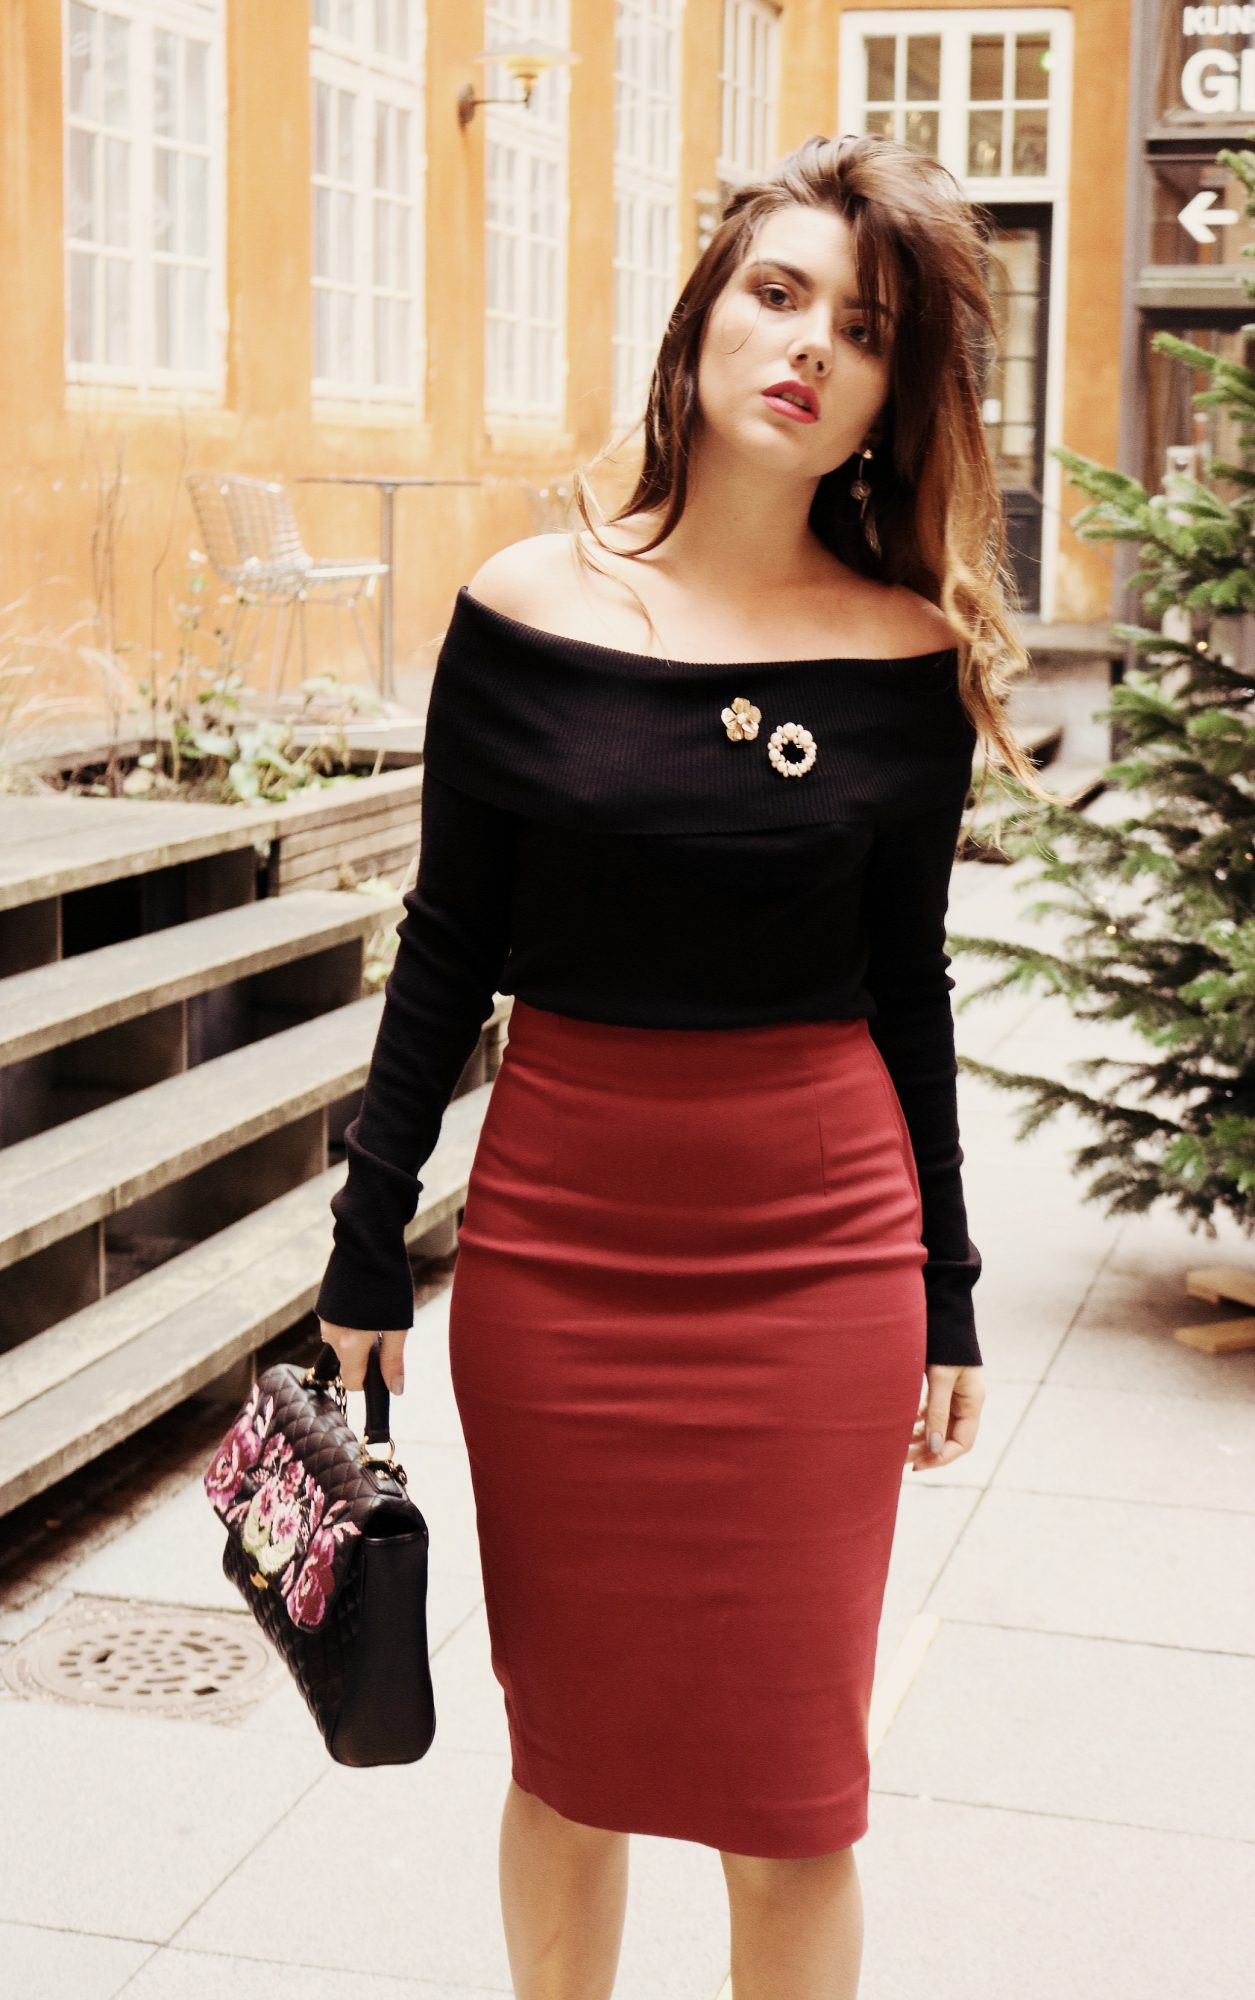 Put a pencil skirt, open your shoulders and add a red lipstick